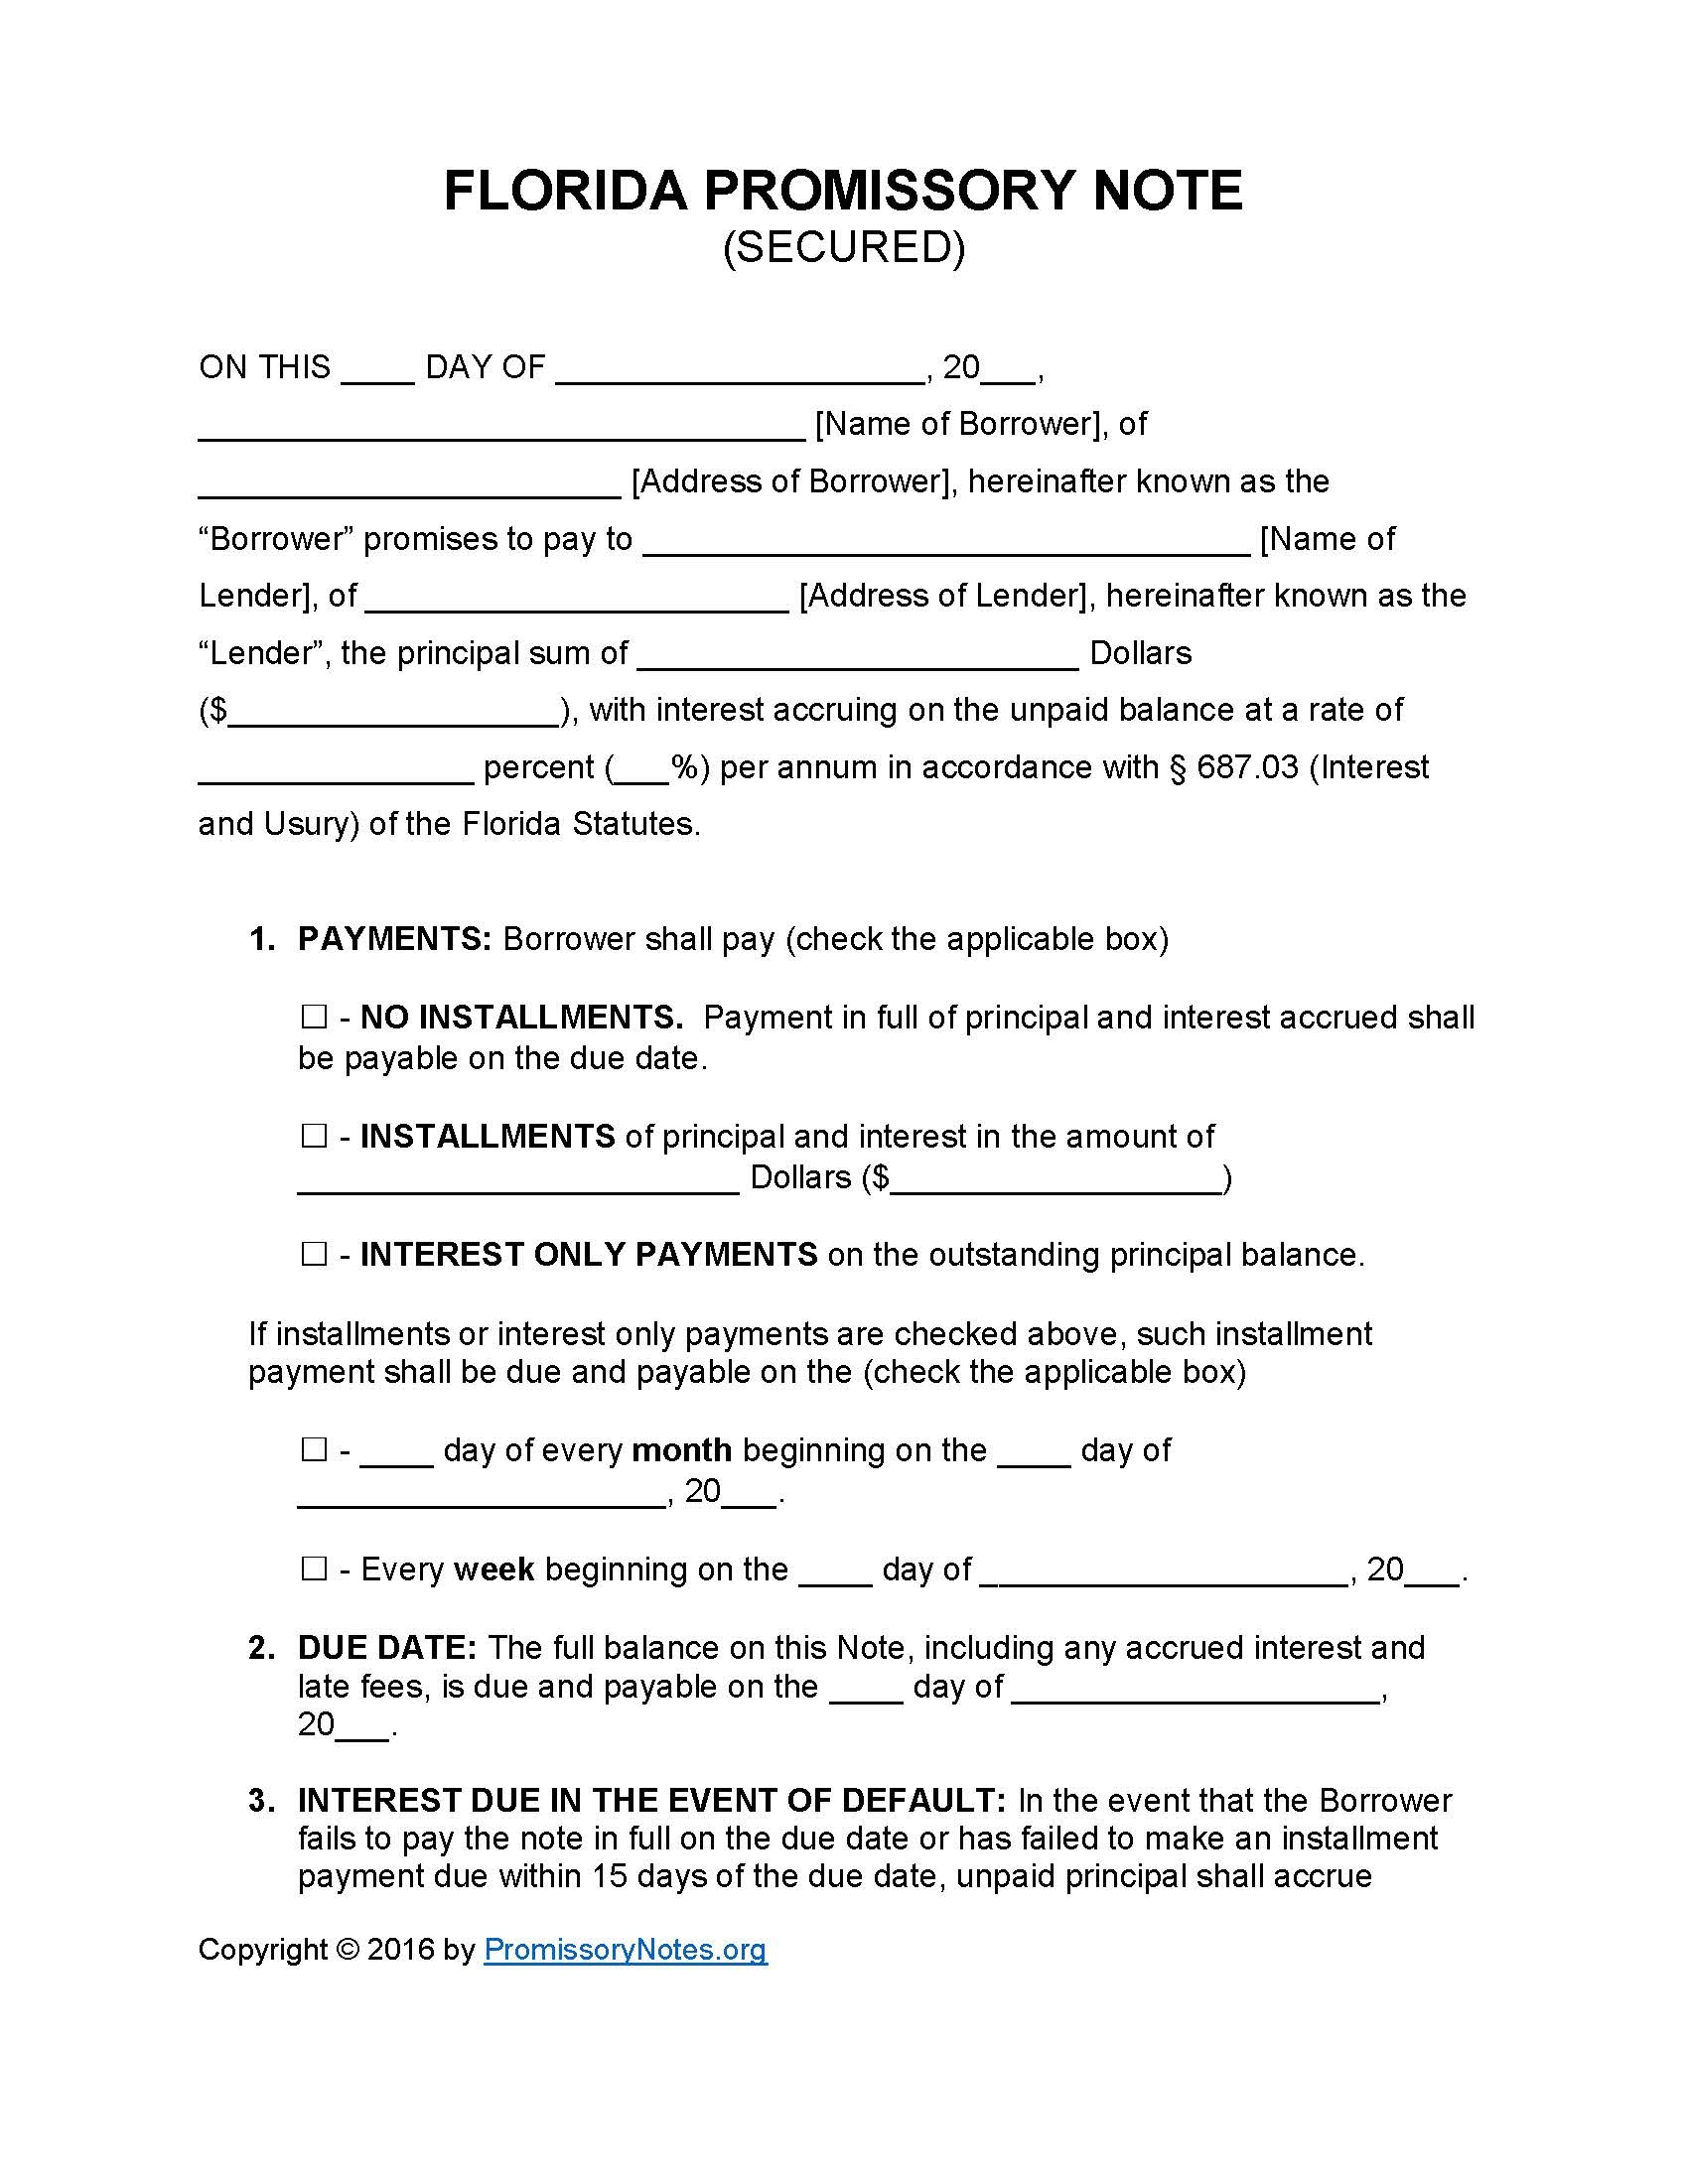 Florida Secured Promissory Note Template - Promissory Notes - Free Promissory Note Printable Form